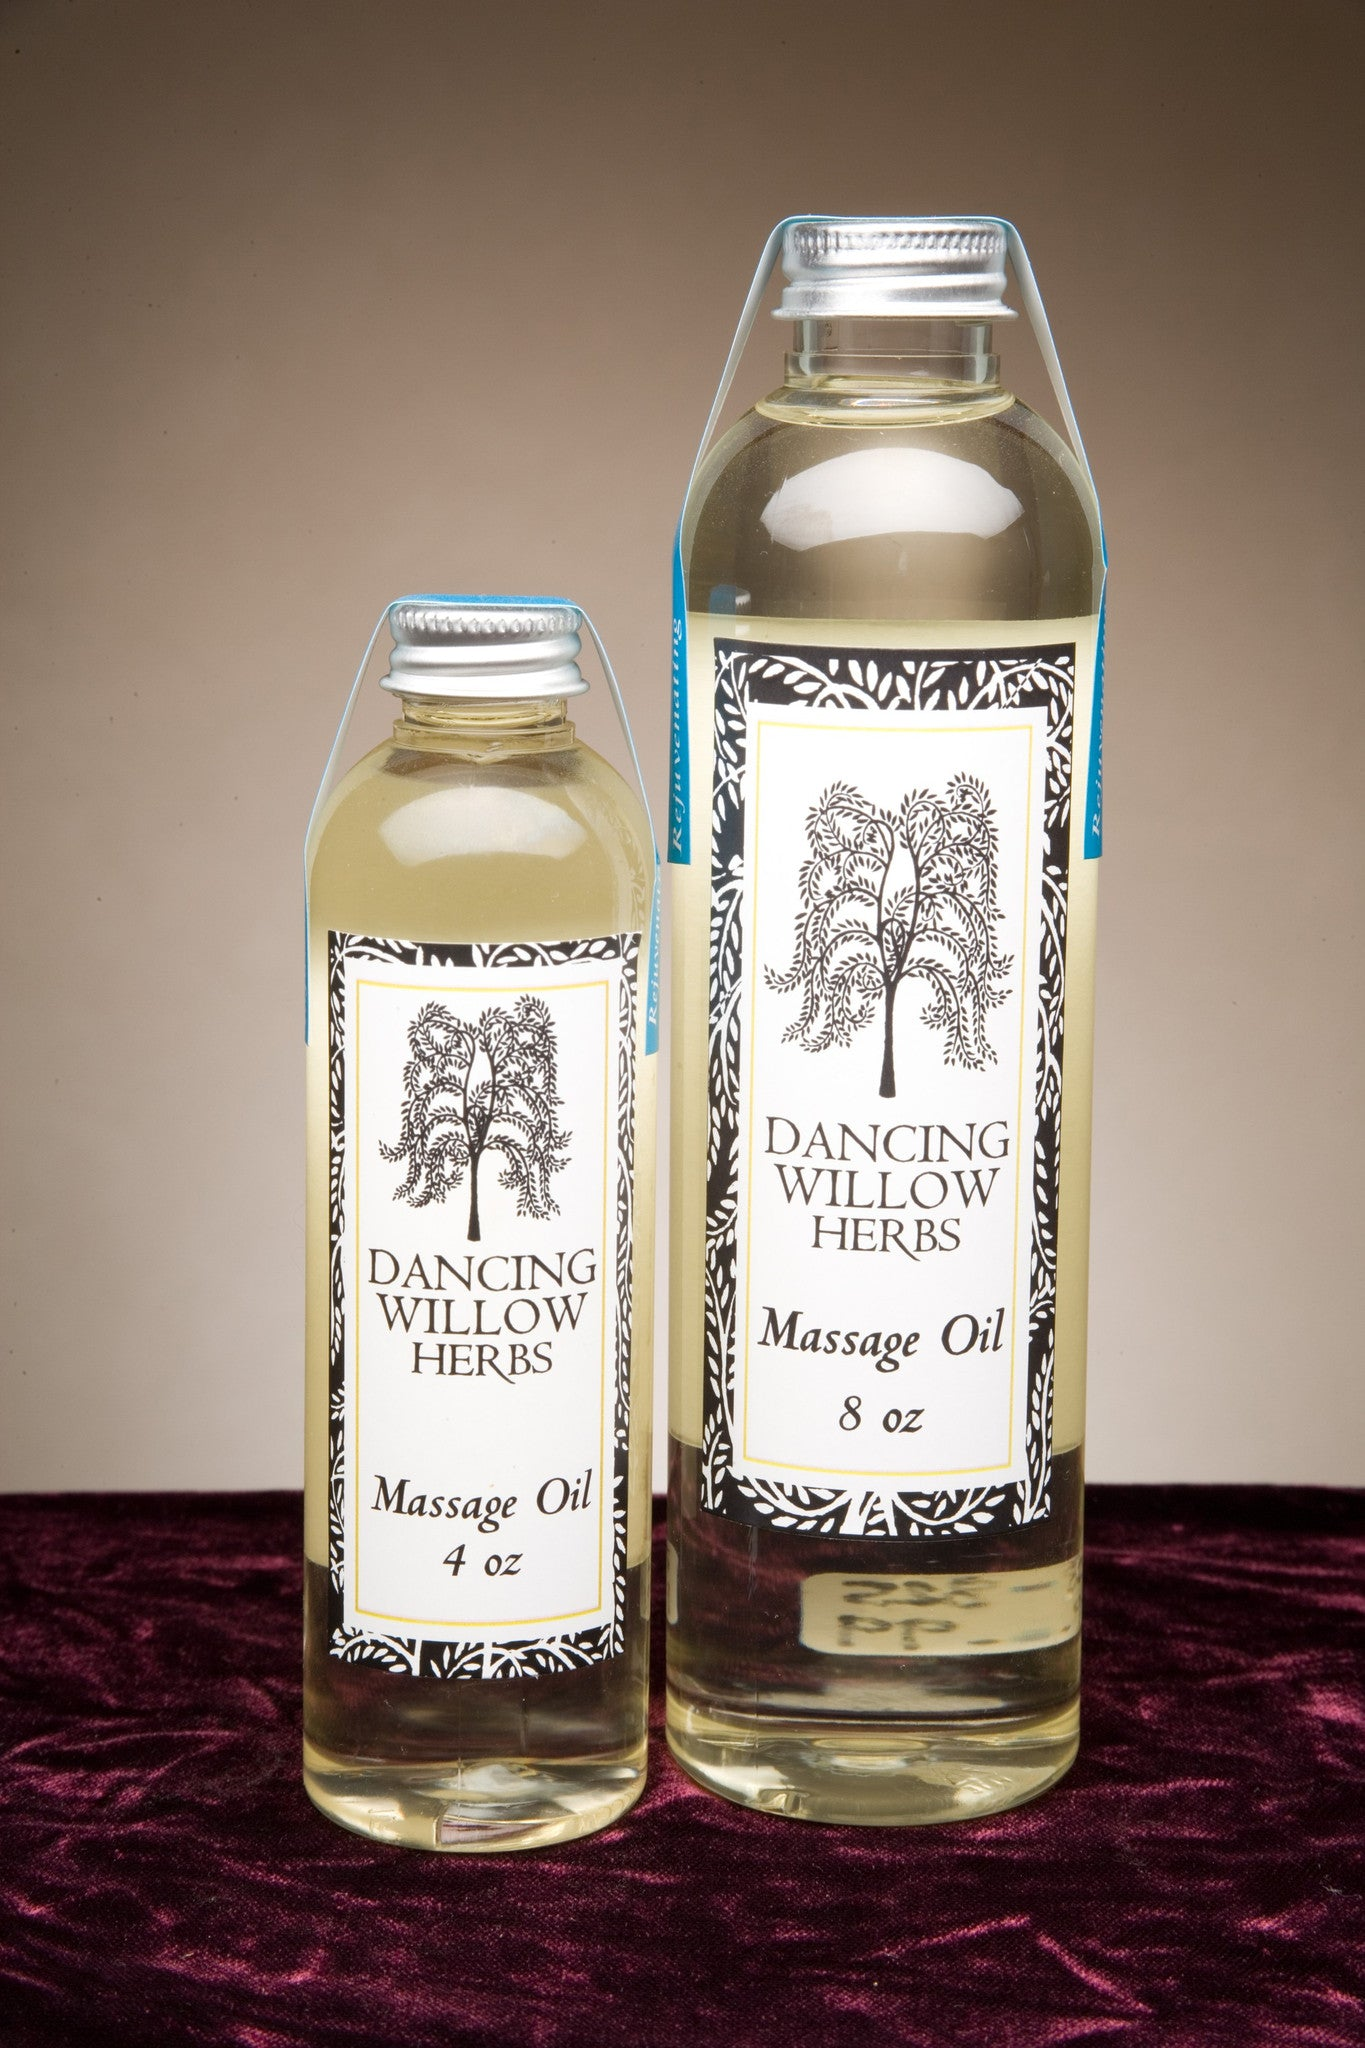 Dancing Willow Massage Oils 8oz - Dancing Willow Herbs oil - herbal formulas